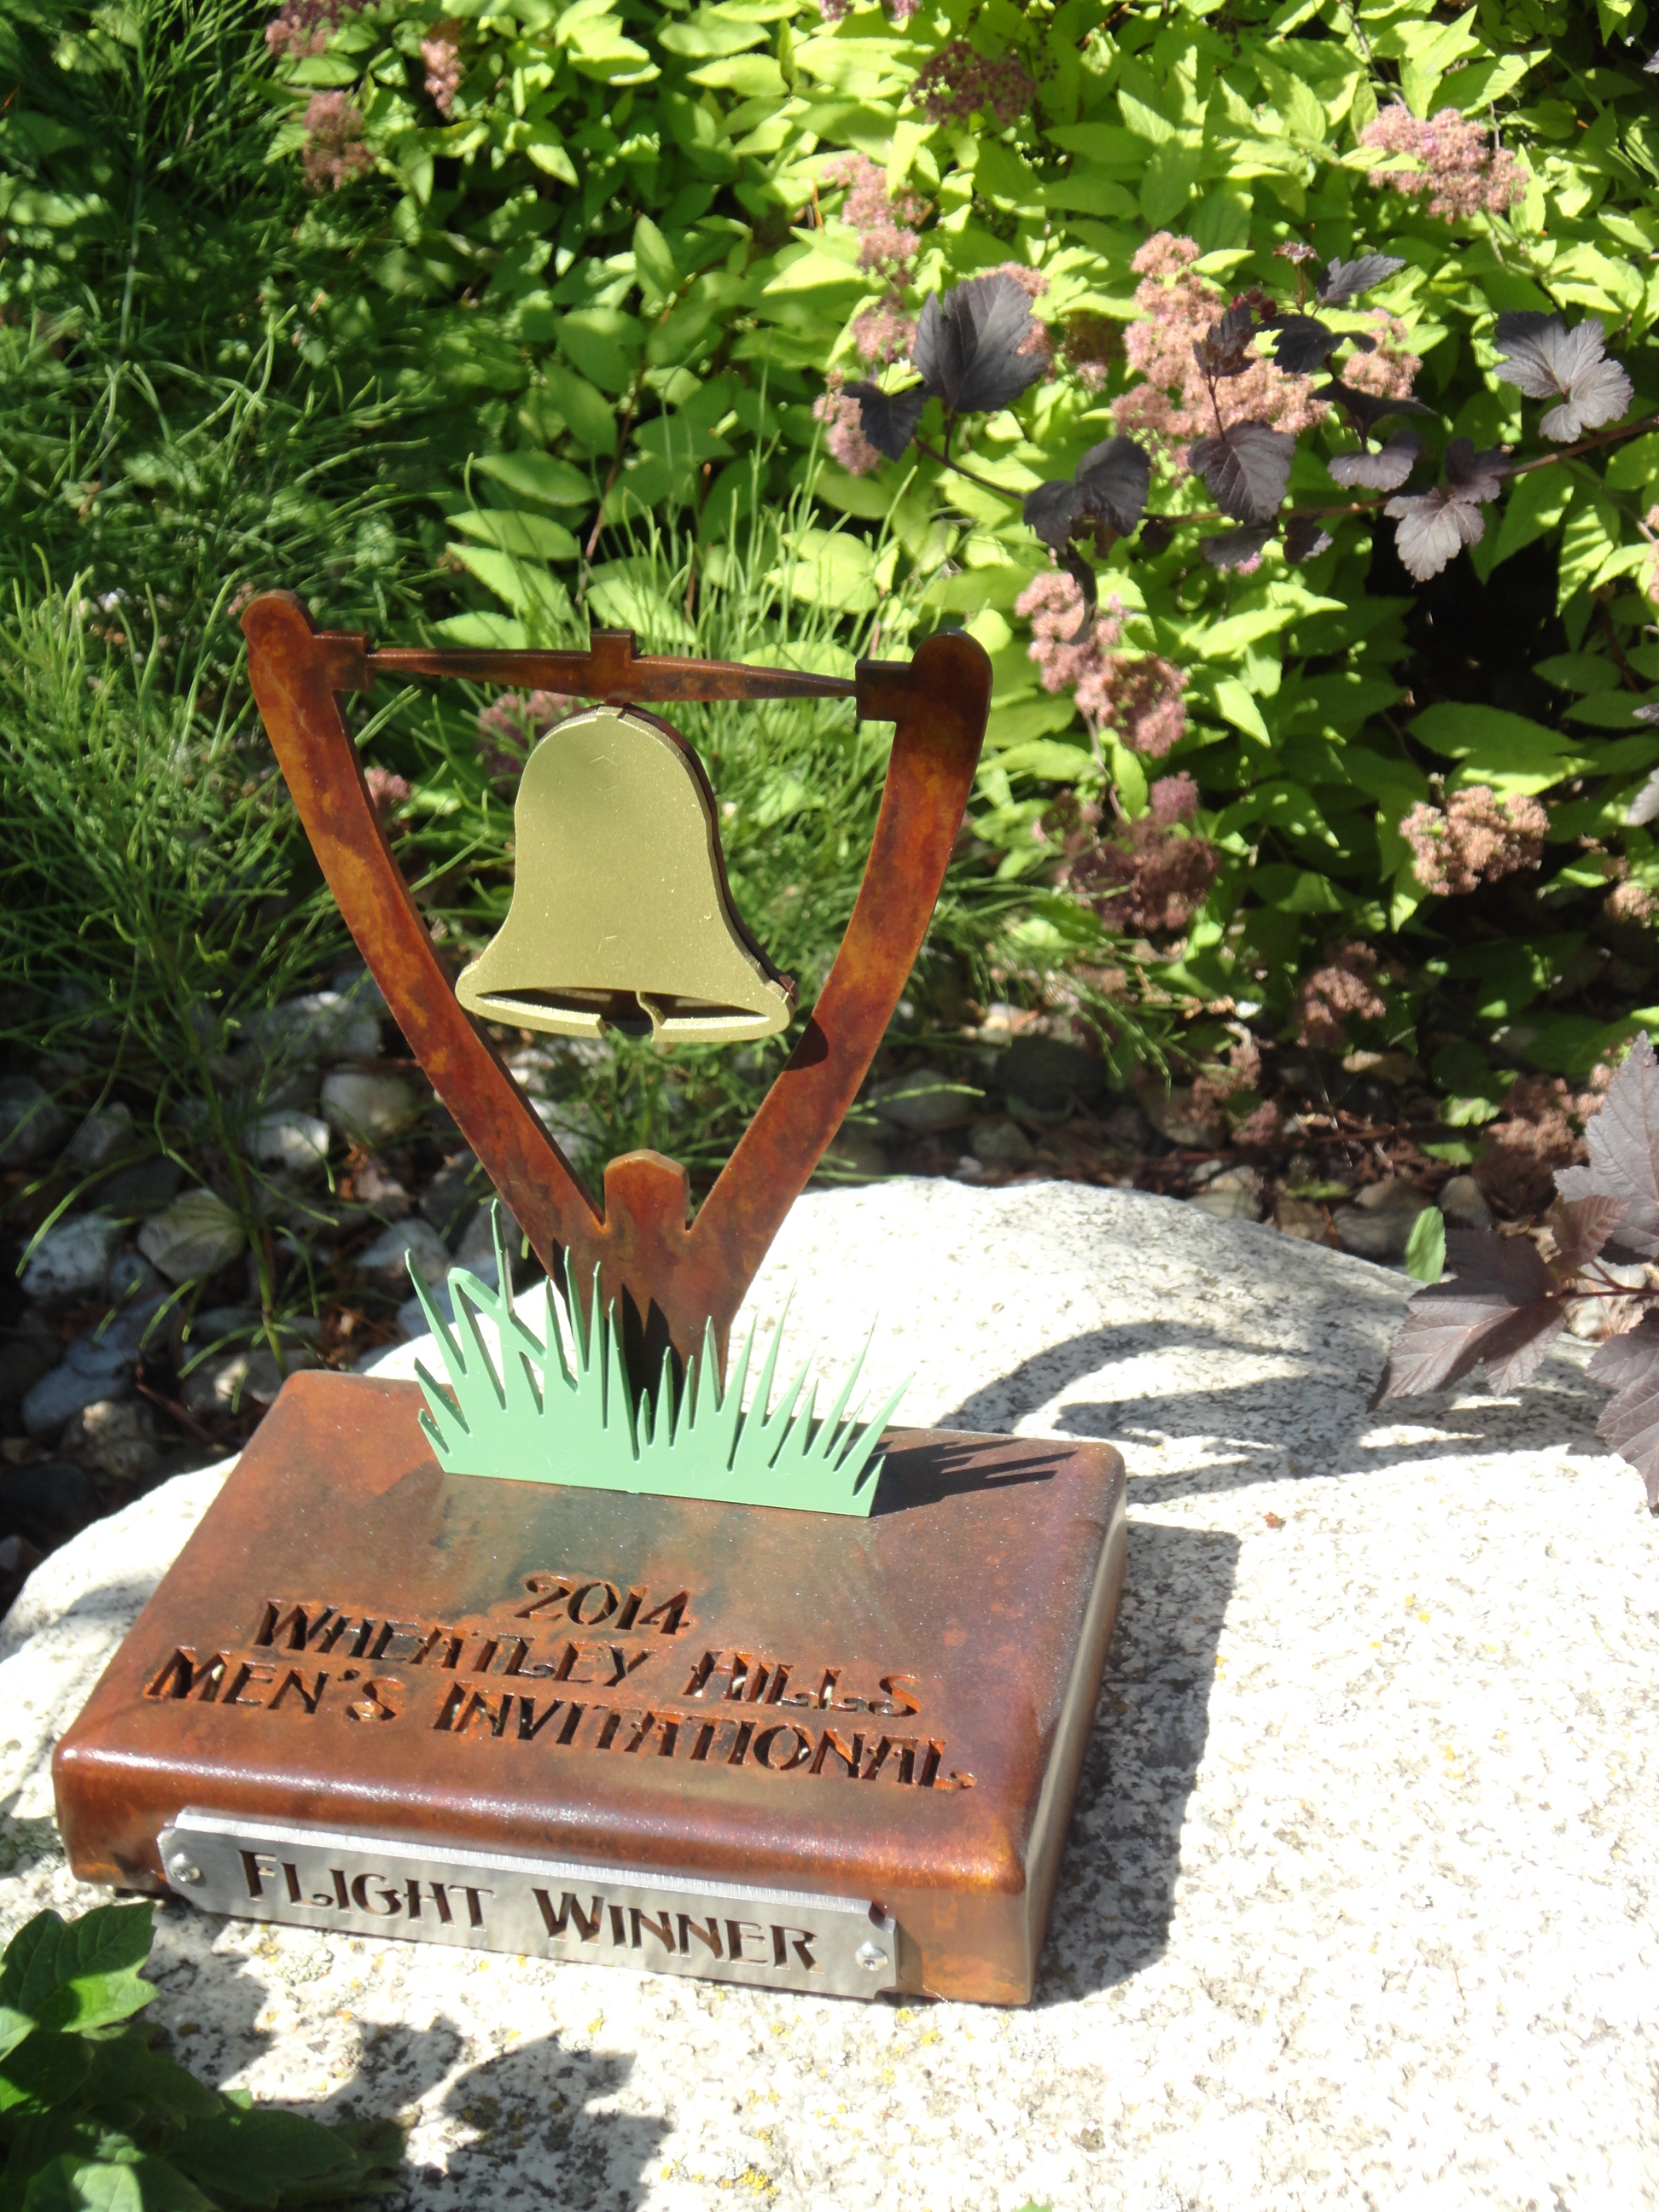 WHEATLEY HILLS -Tournament Trophy for fligh winners